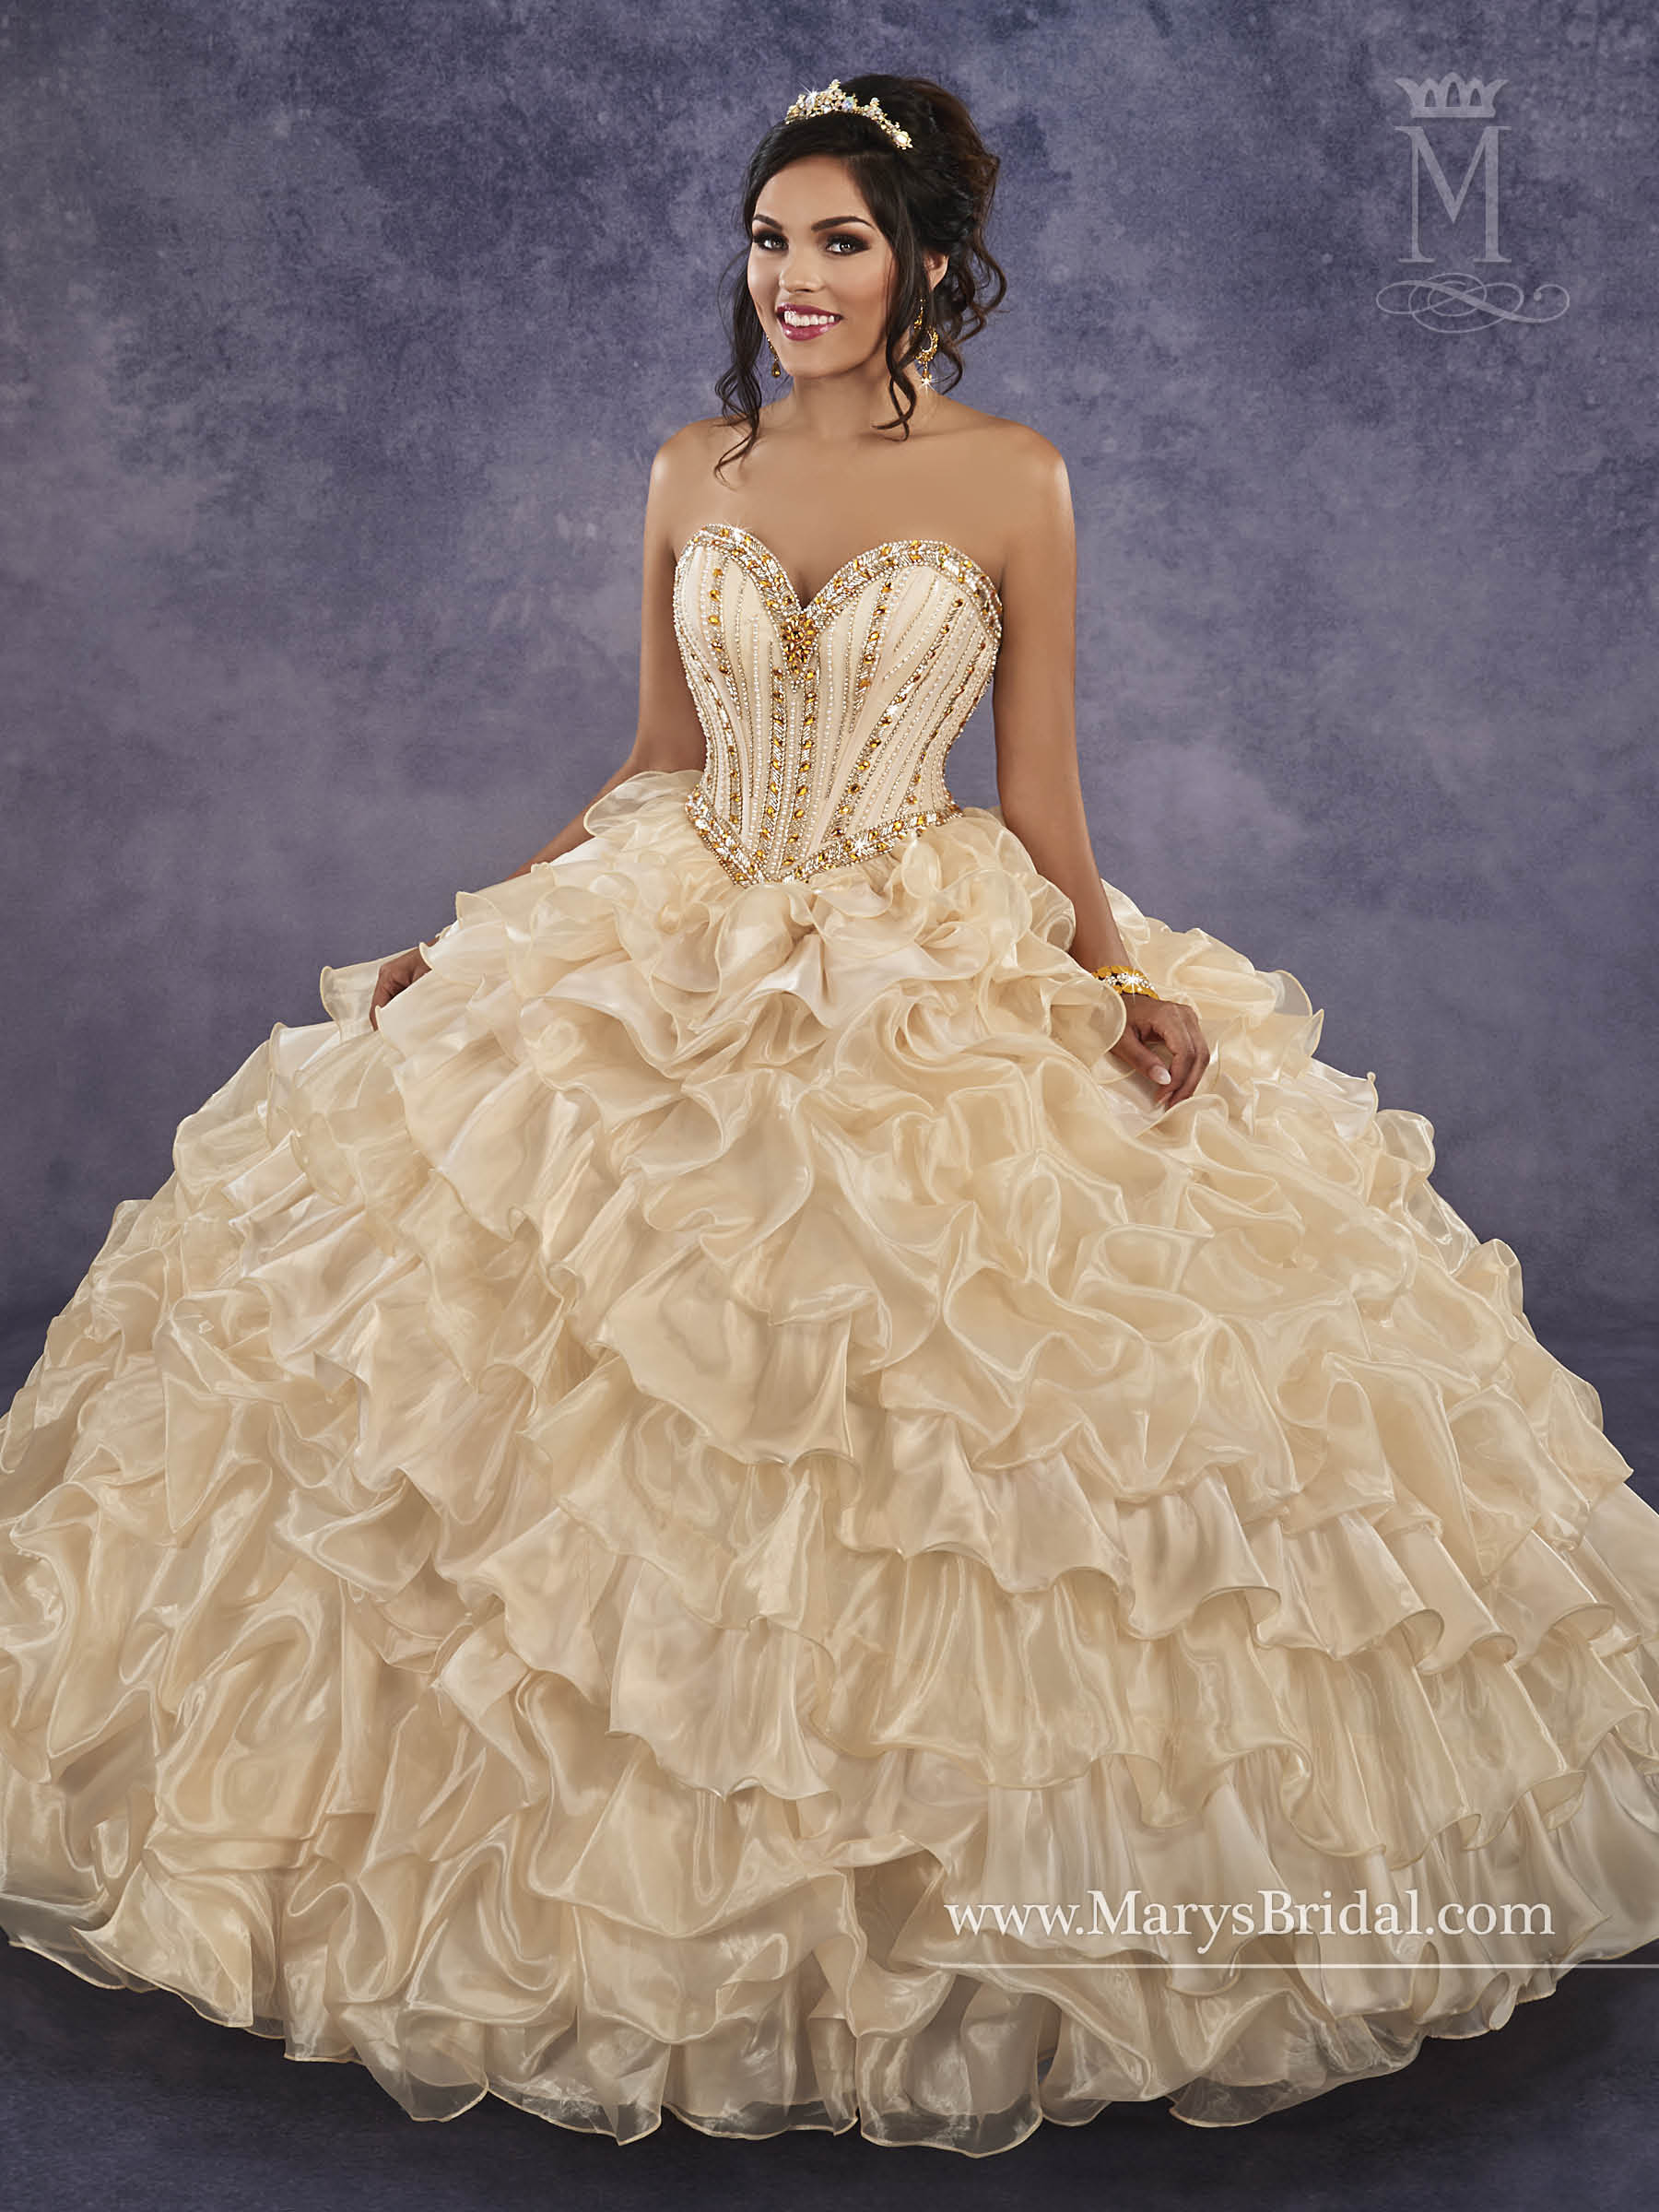 Pink and gold quinceanera dresses best photo